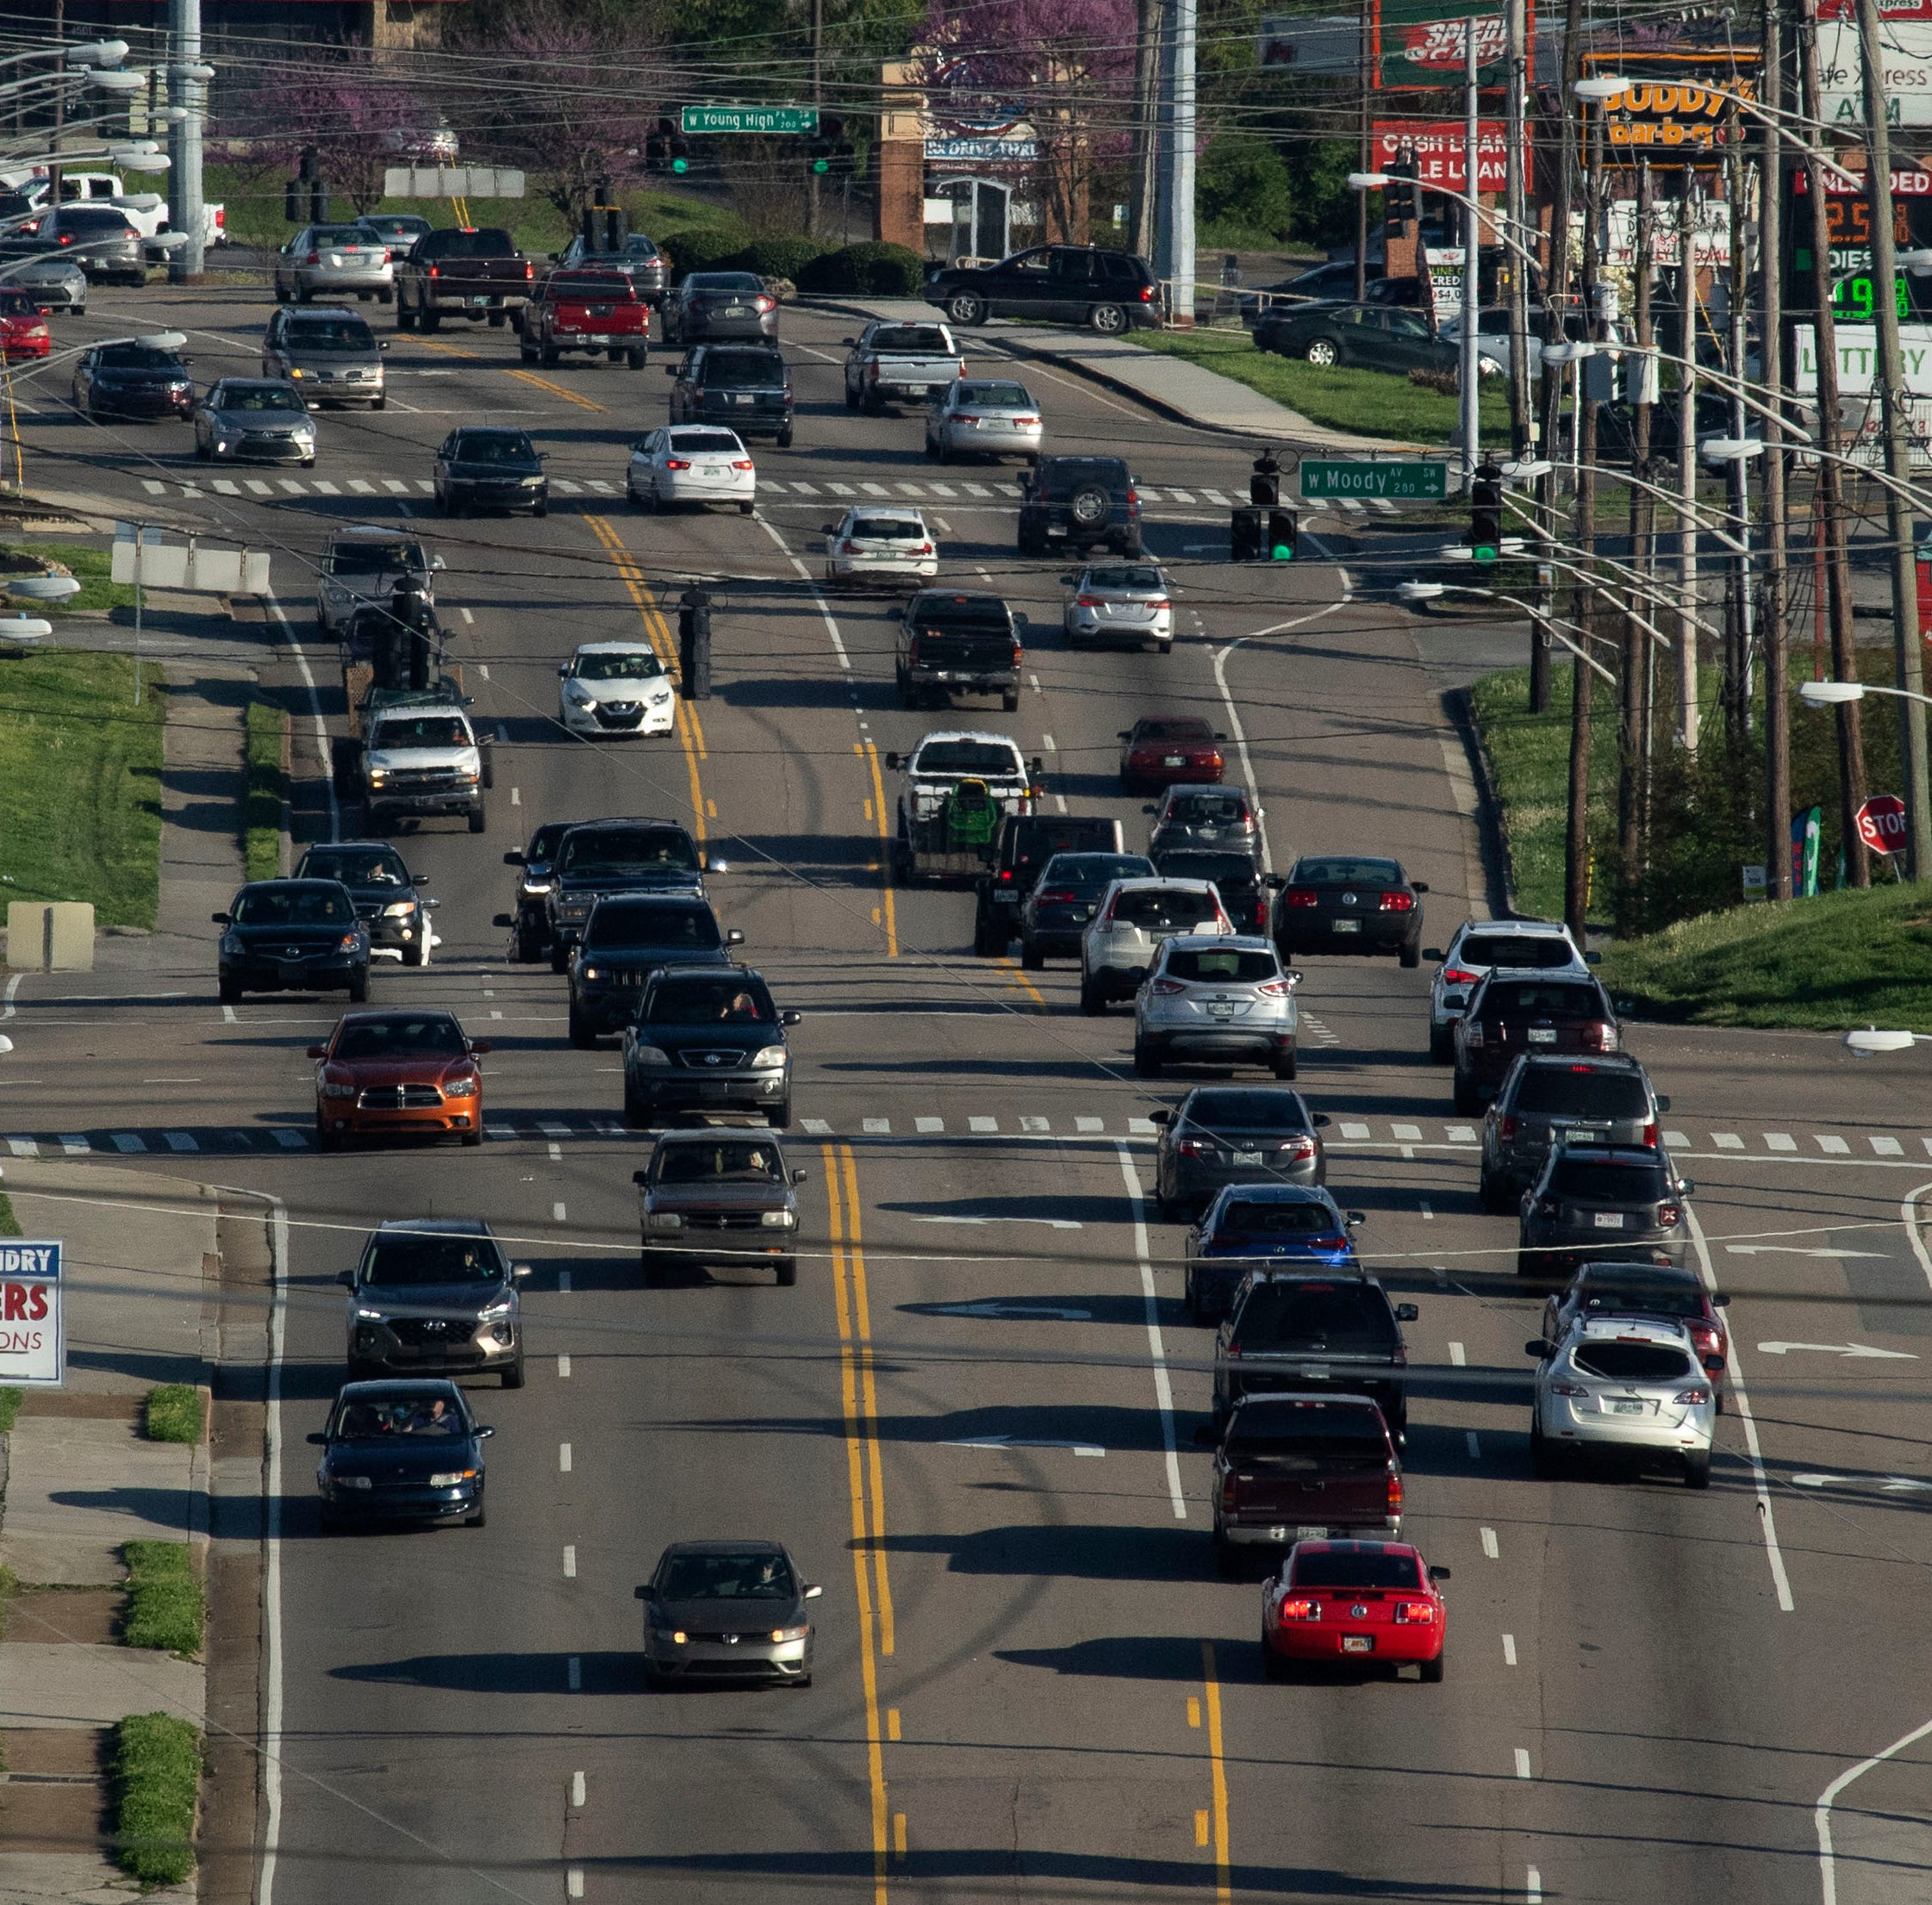 Everyone knows Chapman Highway is dangerous, but can it be made safer?